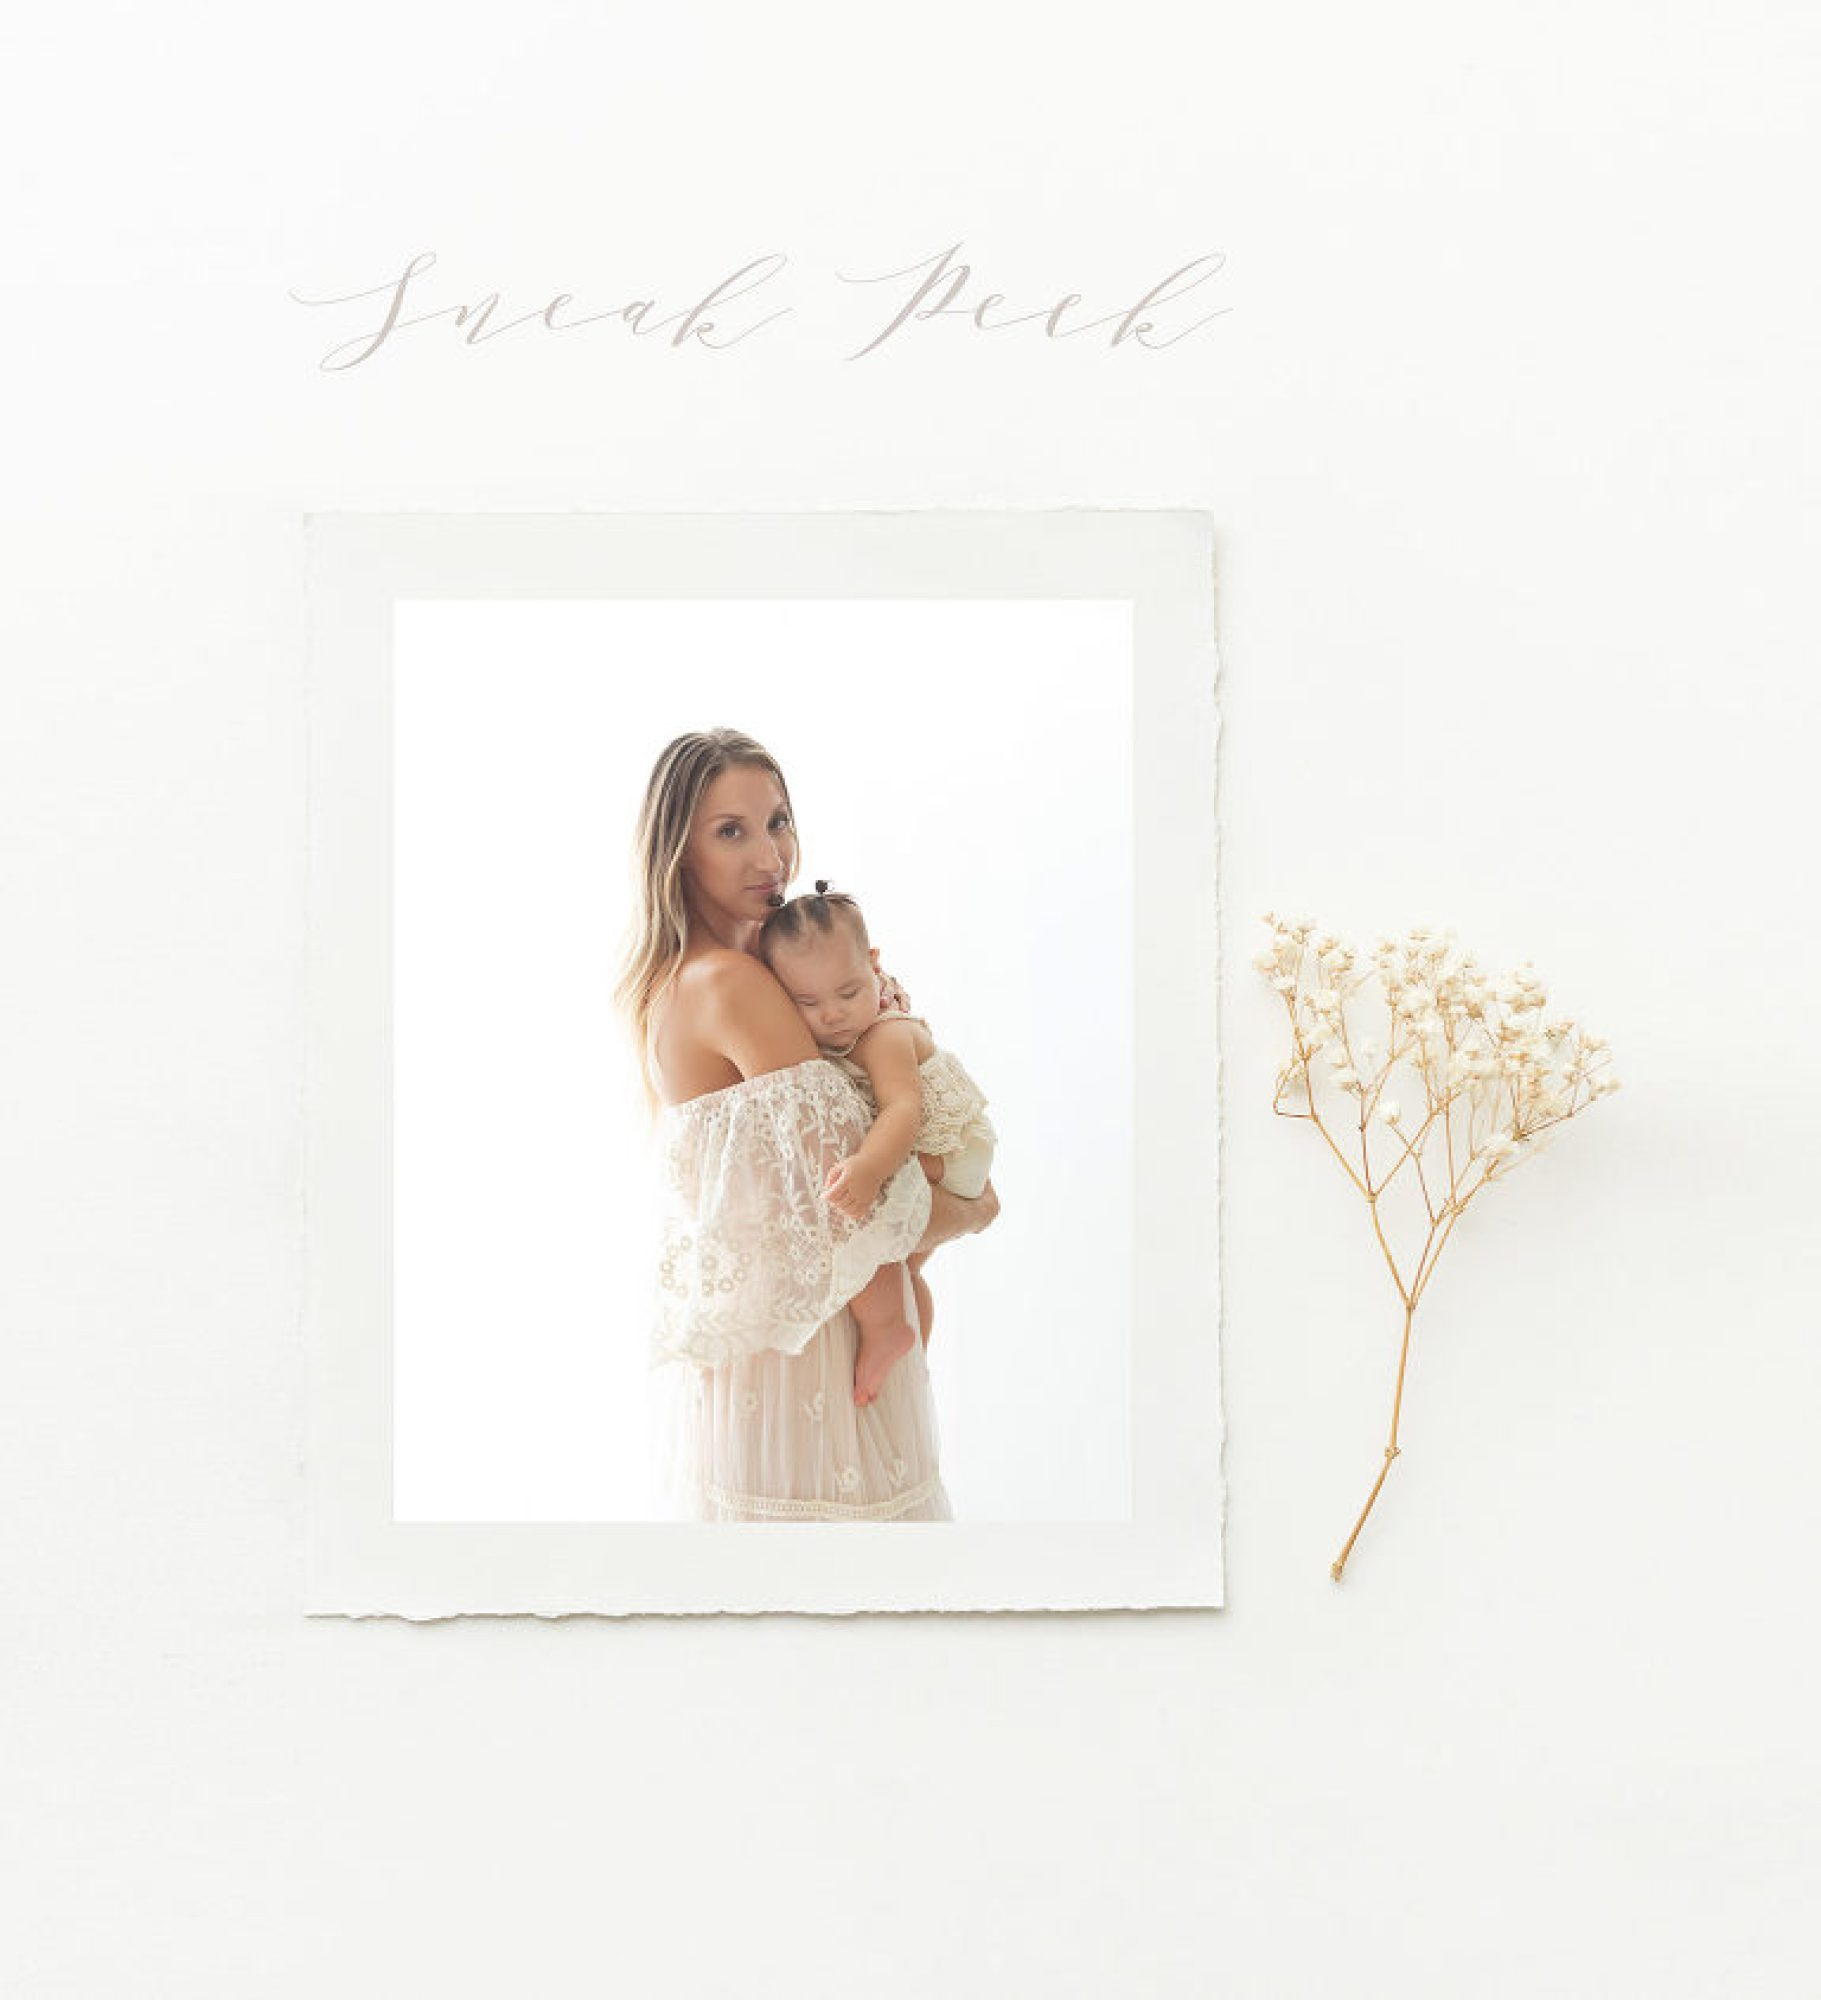 7-month sitter session baby photos with mother backlit photos | Phoenix photographer Reaj Roberts Photography